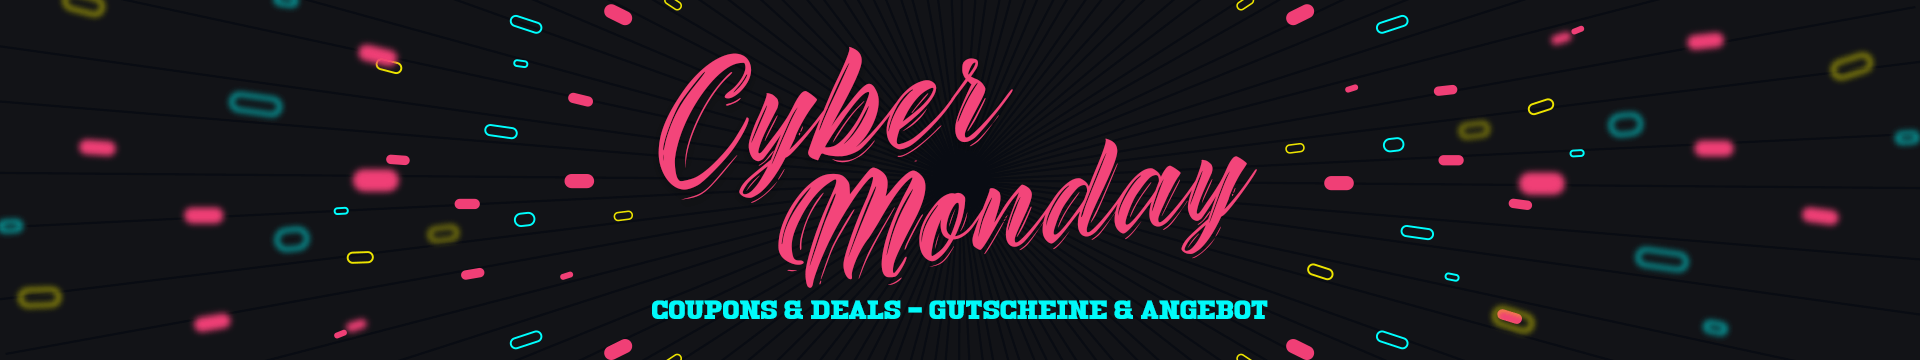 Cyber Monday Discount Codes & Offers